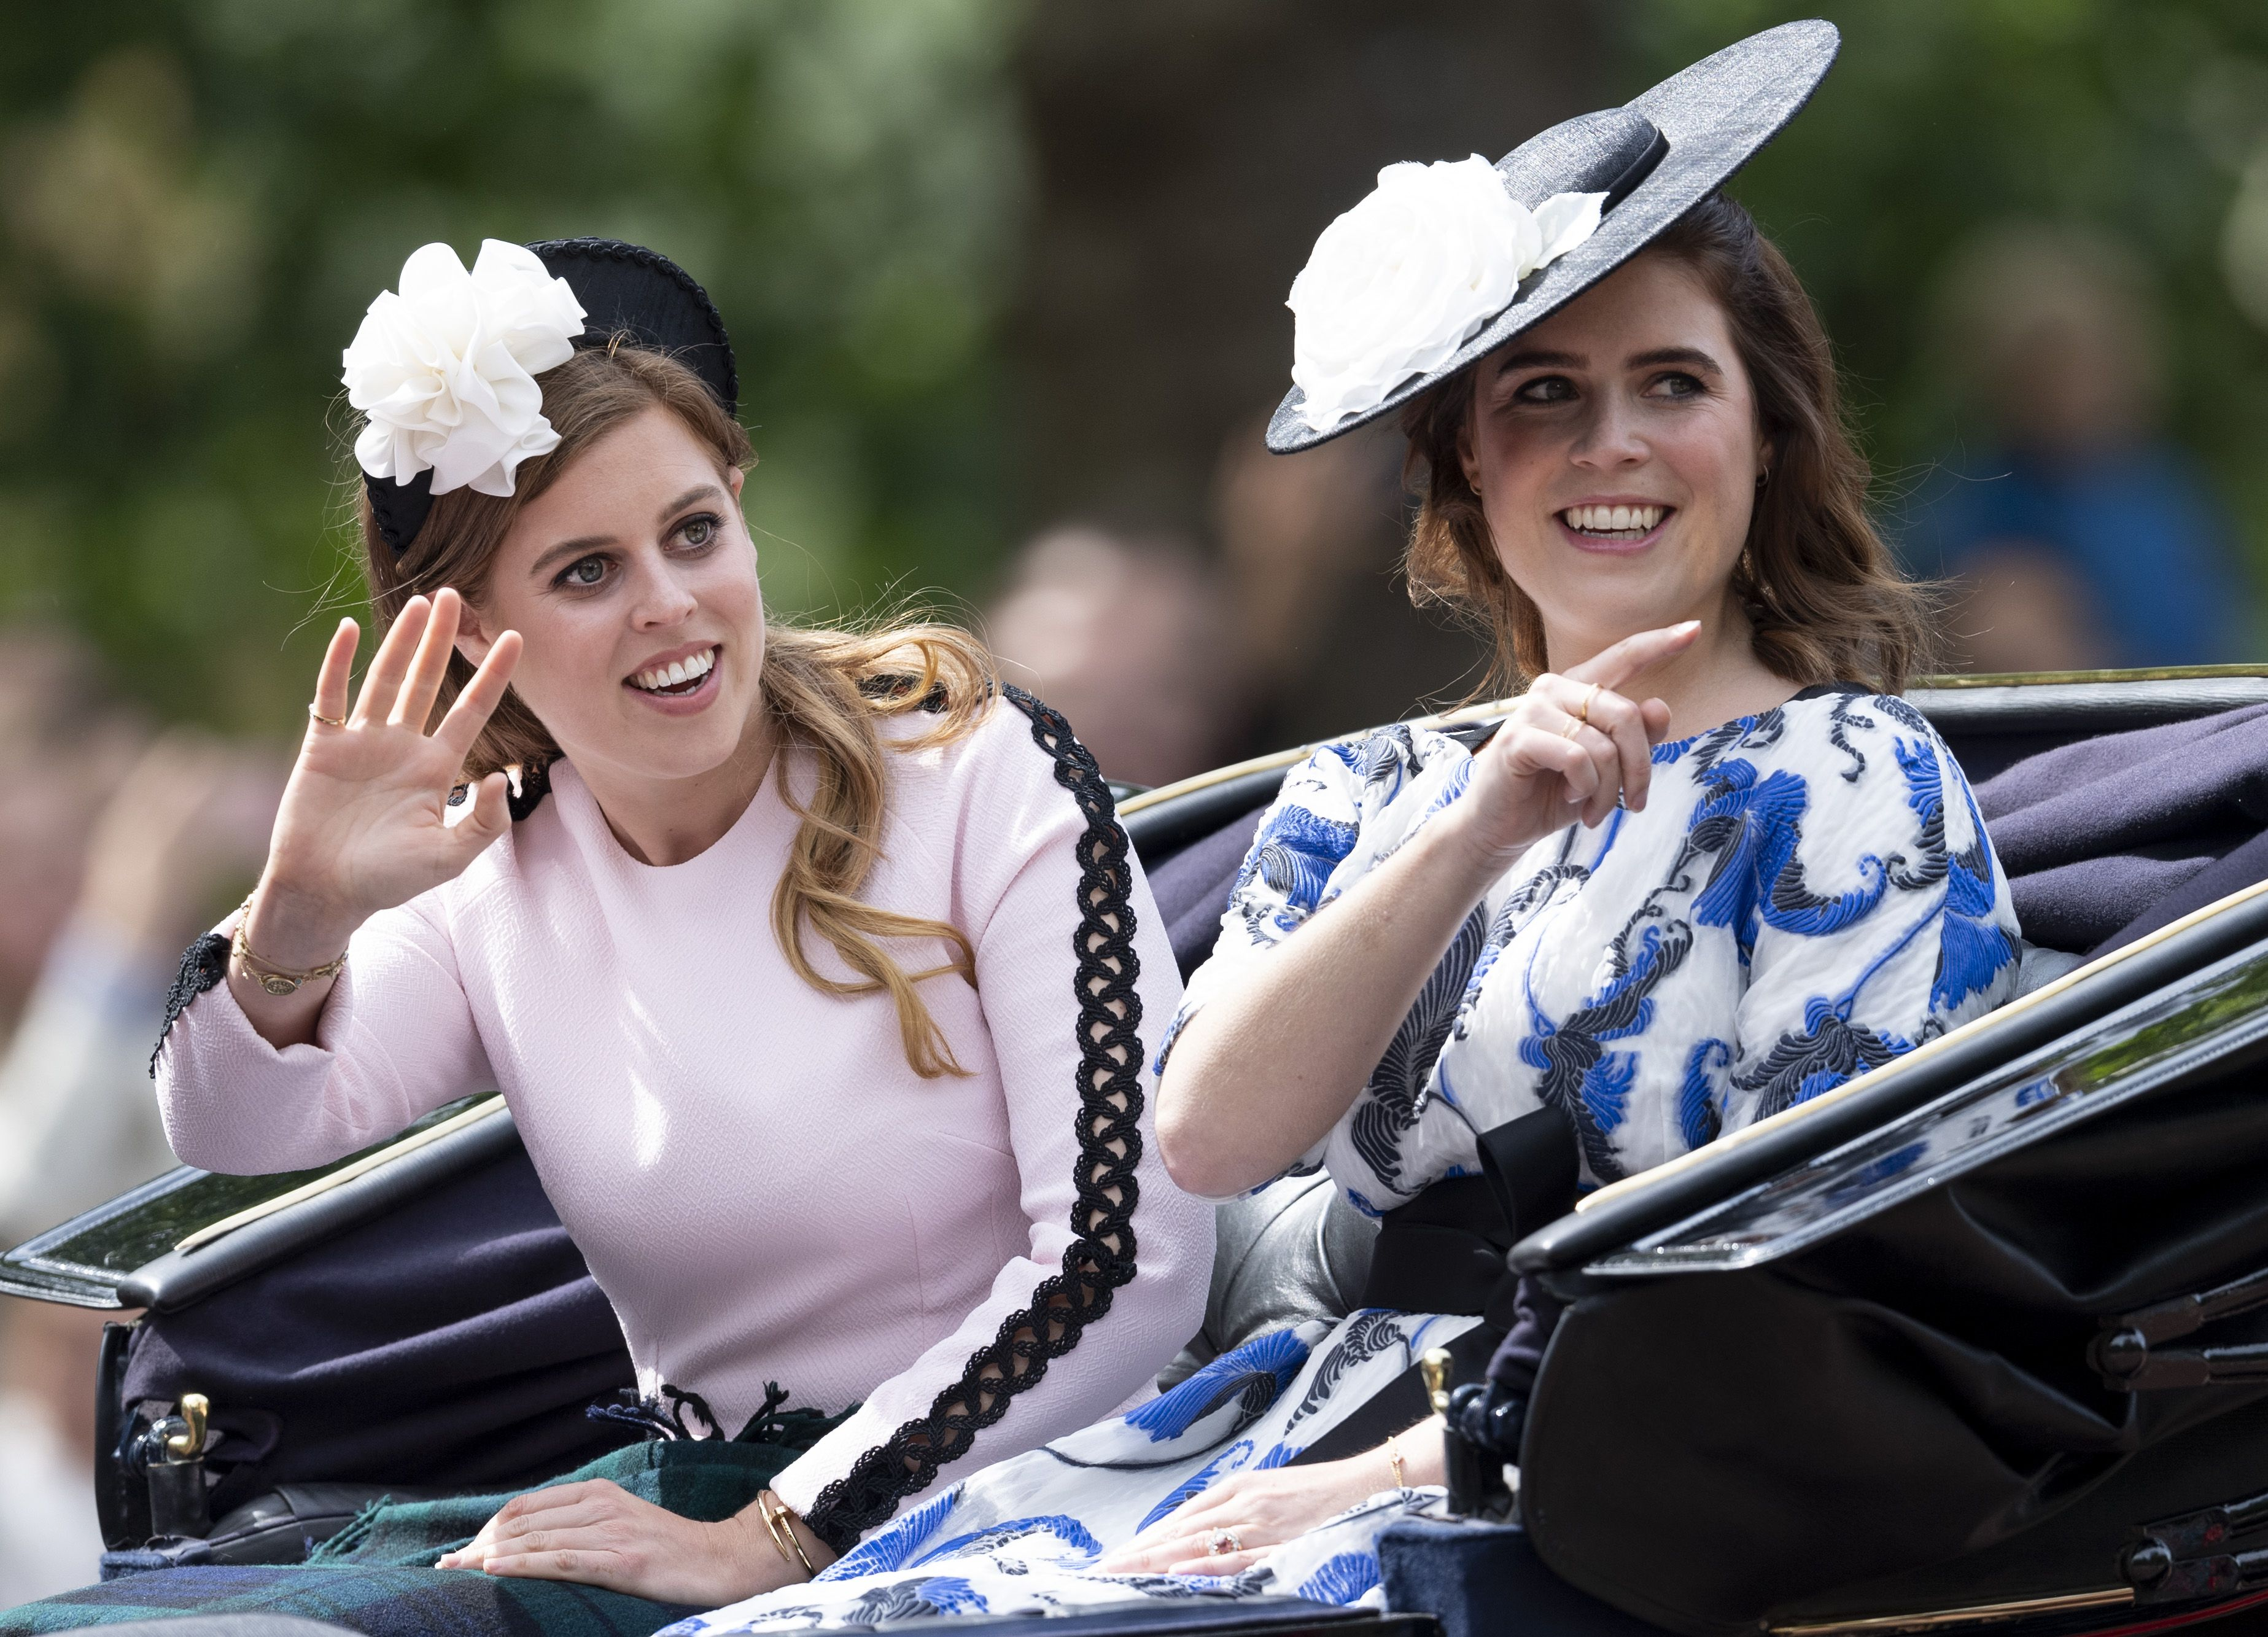 Princess Eugenie at Trooping the Colour 2019 - Princess